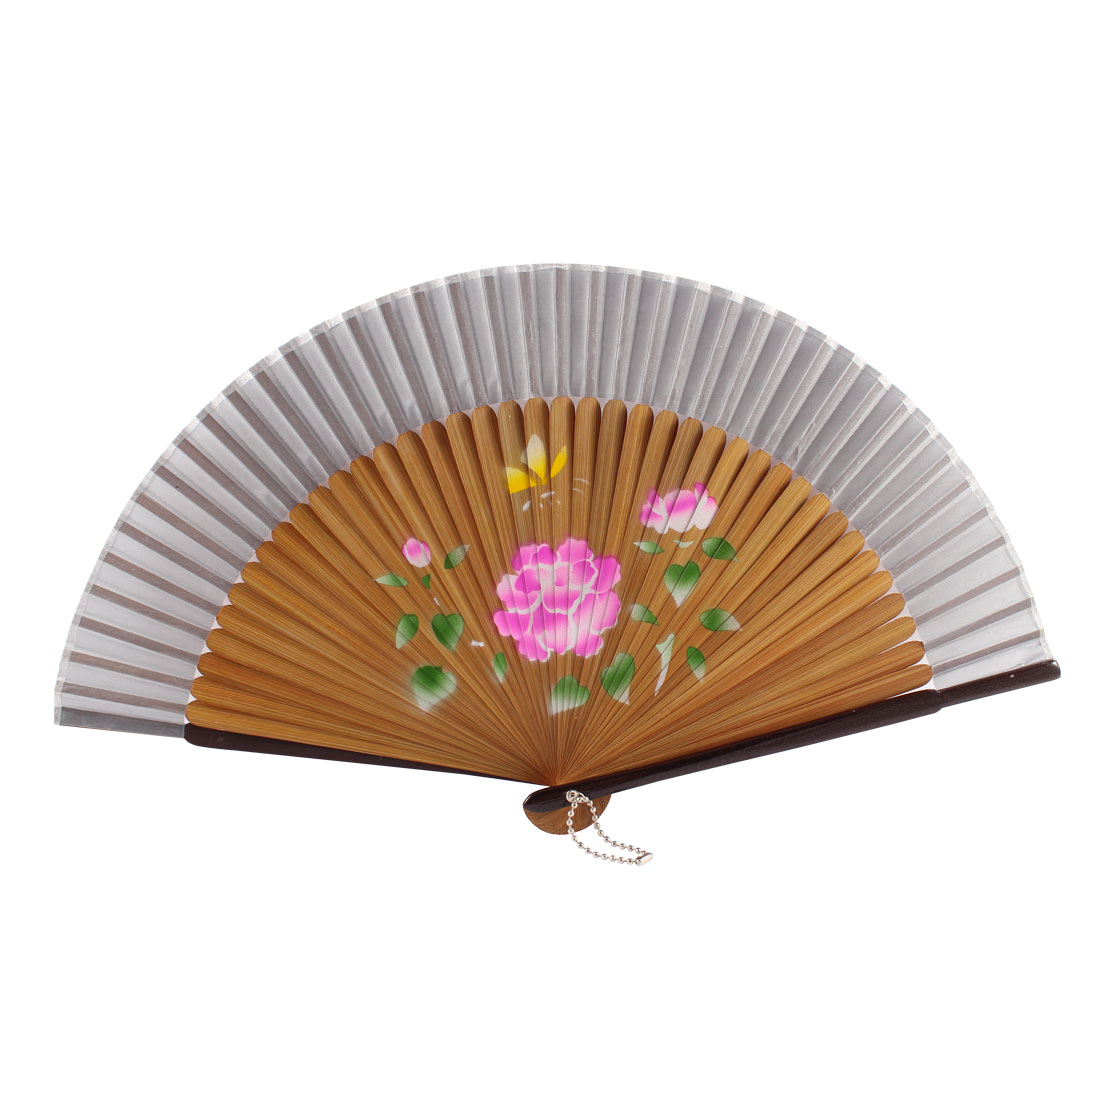 Women Summer Wedding Party Lotus Pattern Nylon Bamboo Frame Folding Hand Fan Gift Decoration Wood Color Gray